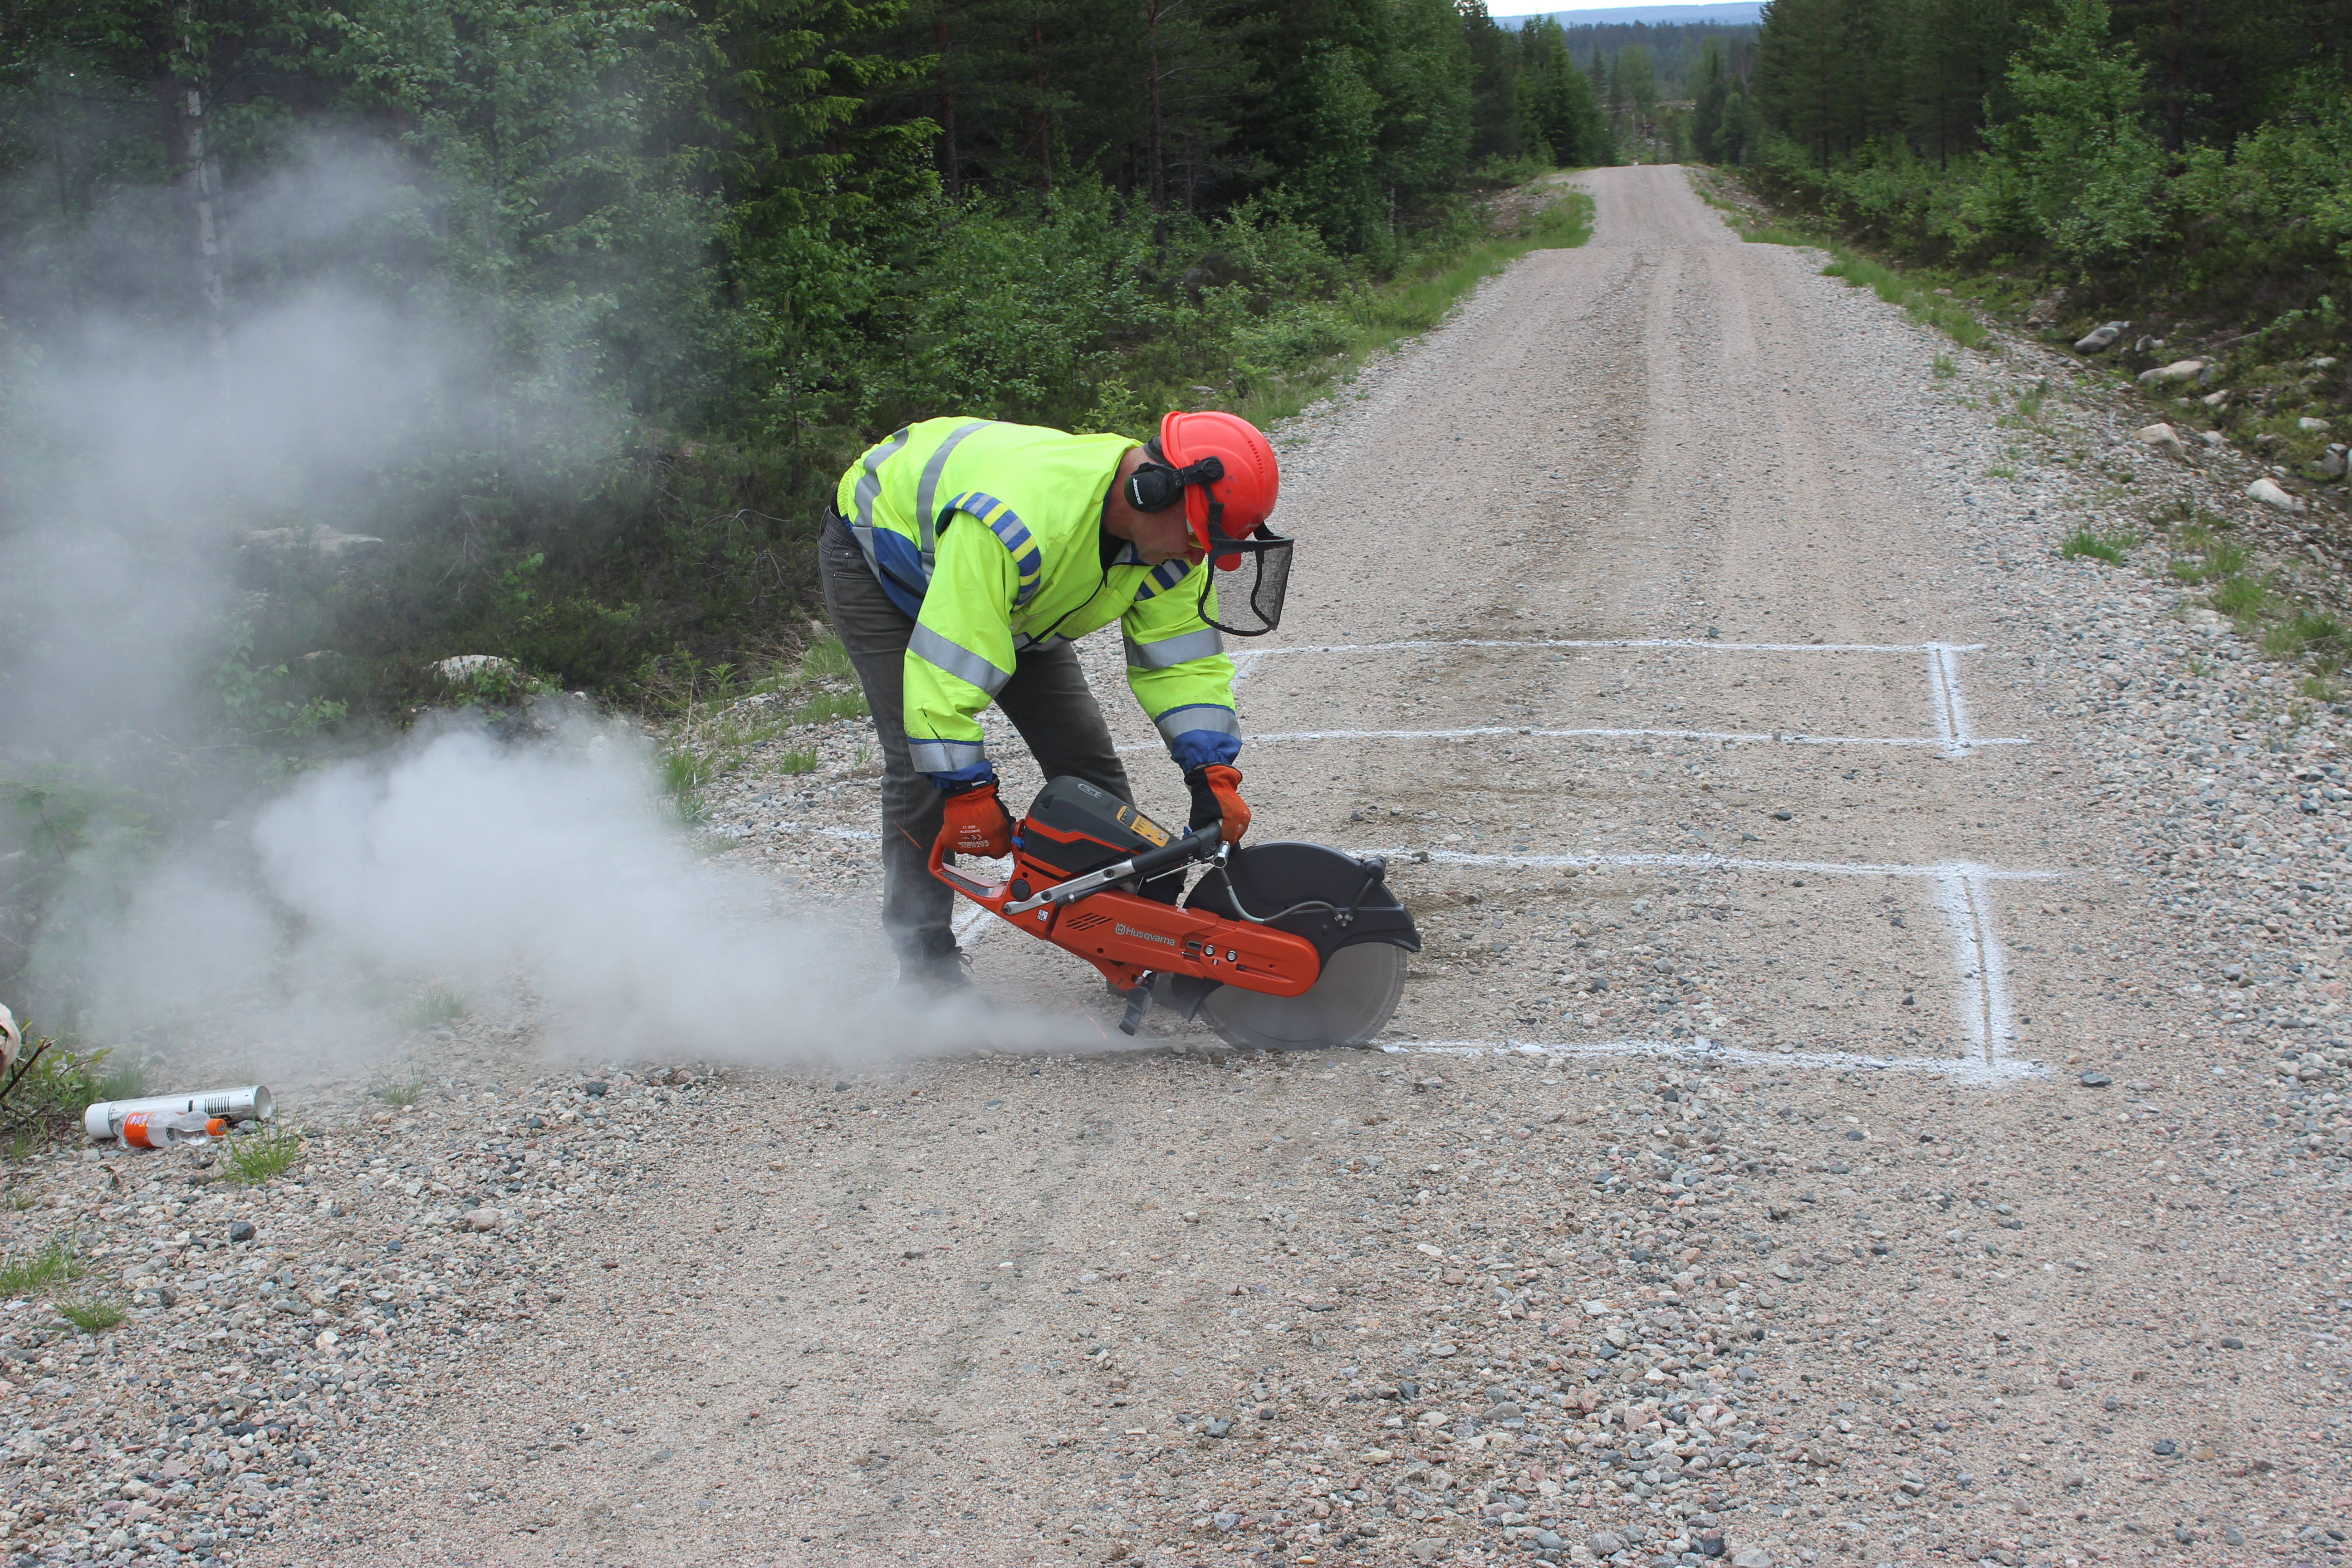 Installing of vehicle counting device under the surface of forestry road in Suomussalmi municipality, Kainuu. Photo: Juho Hiltunen